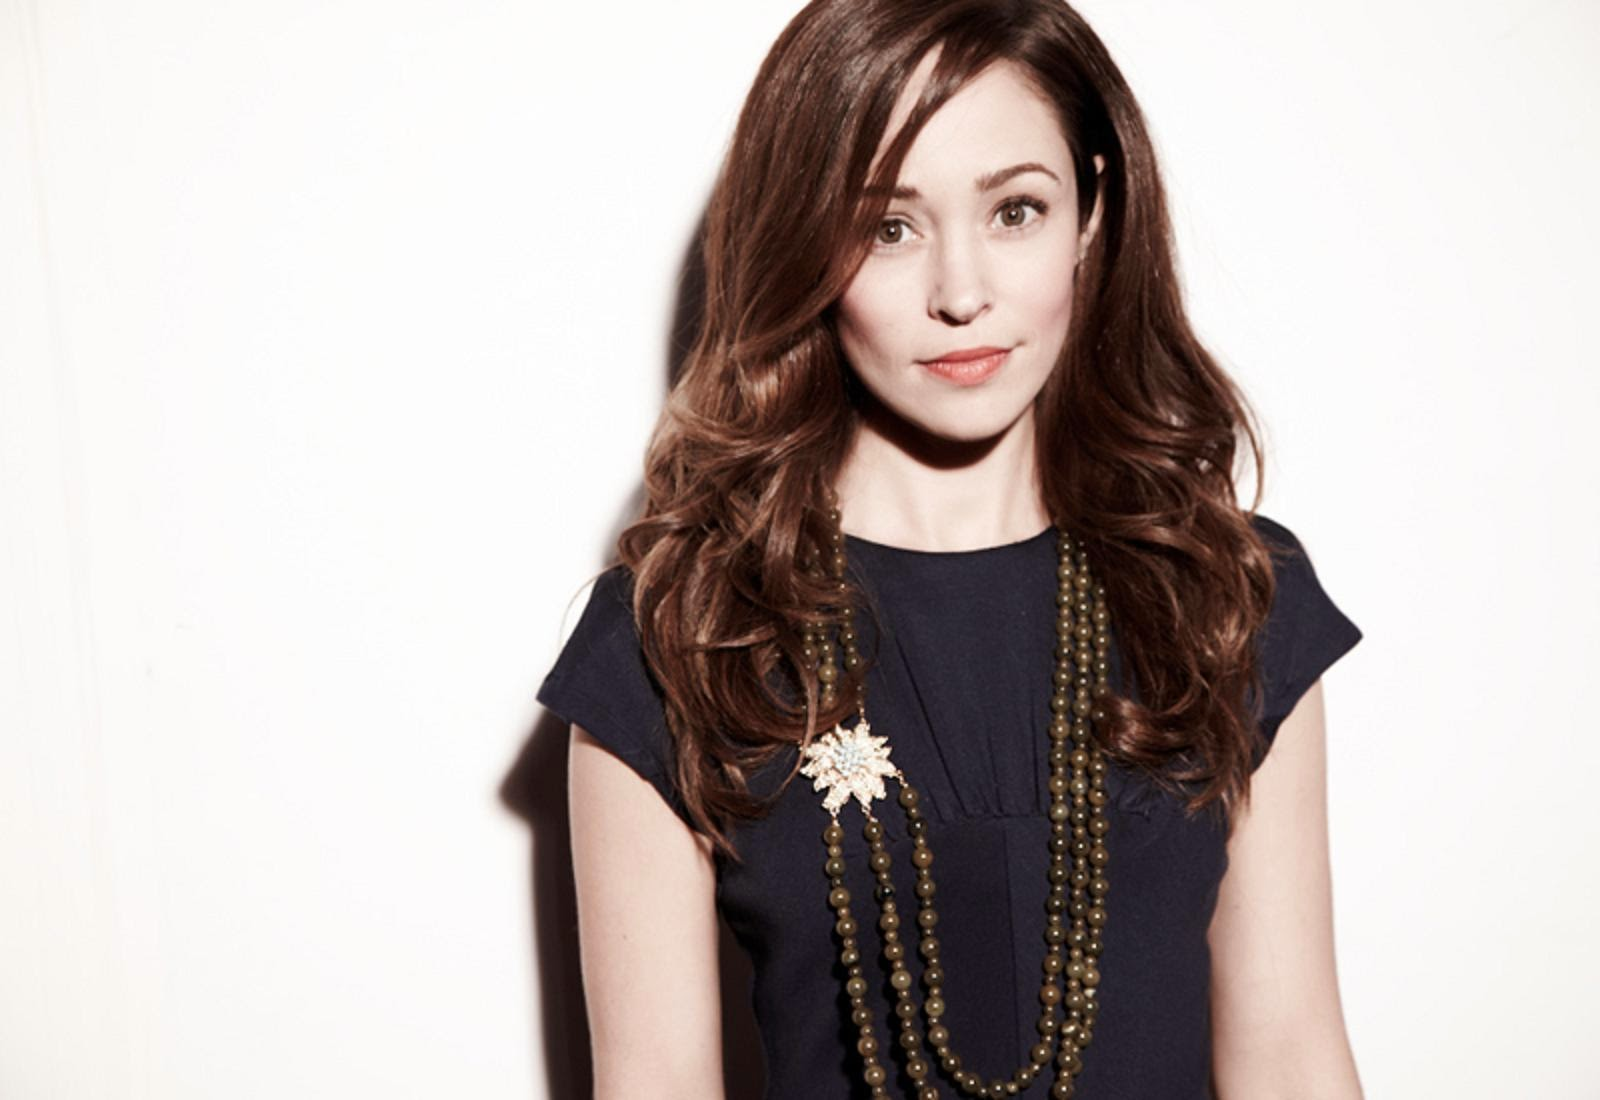 November Fall Wallpaper For Computer Autumn Reeser Wallpapers Free Download Theroyalspeaker